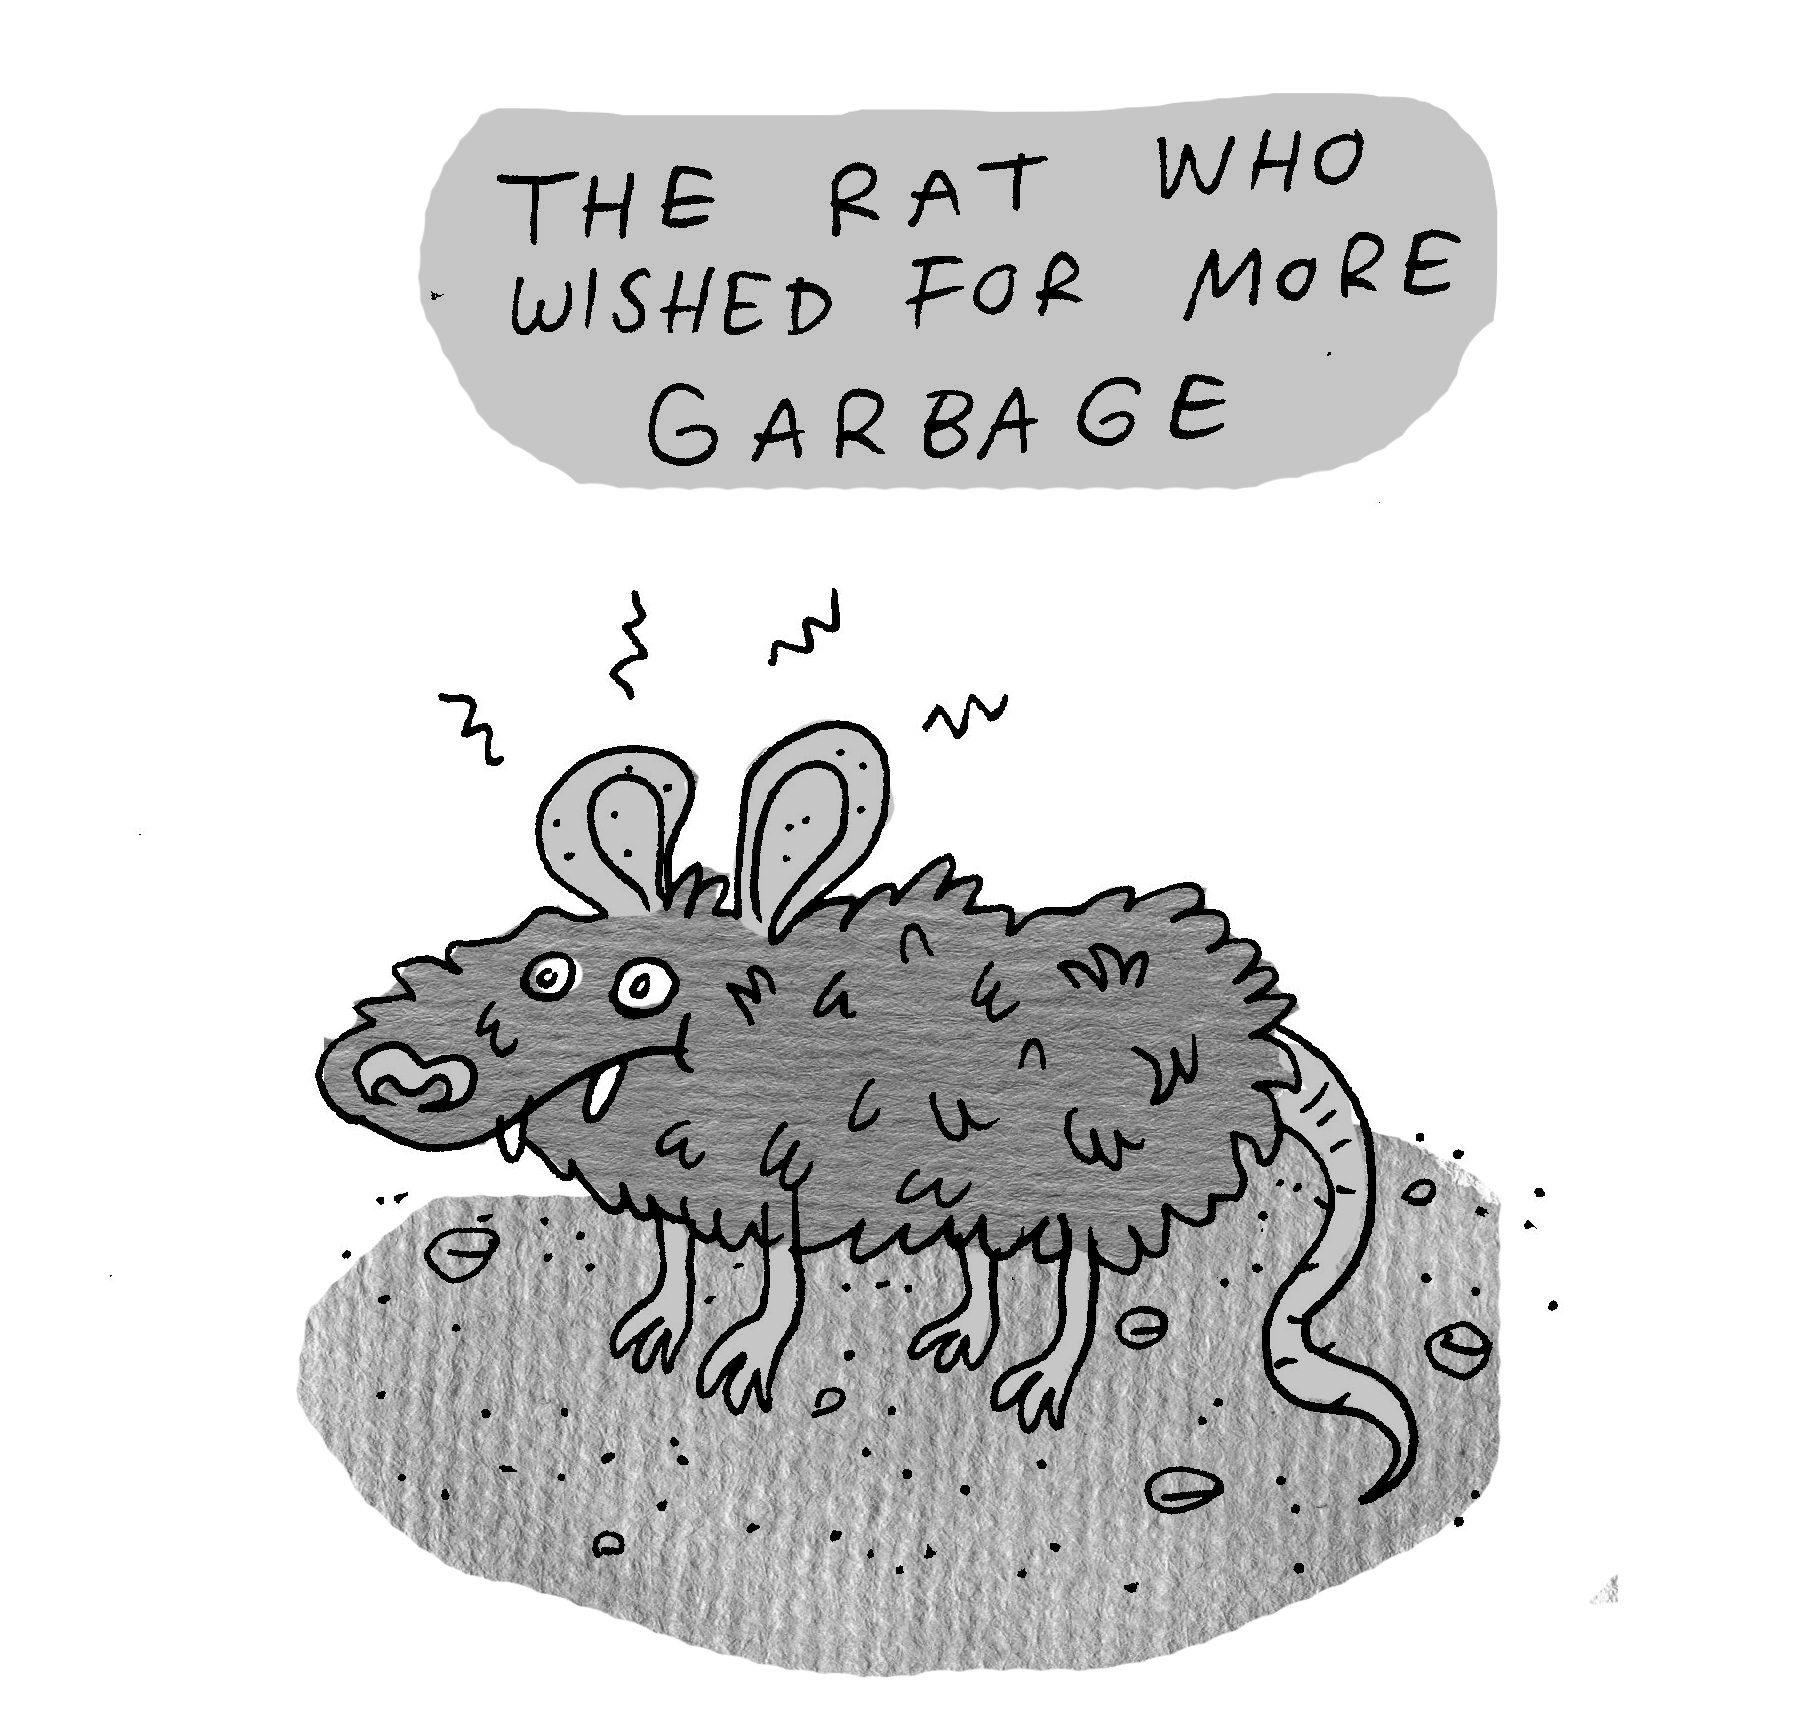 Ratwish